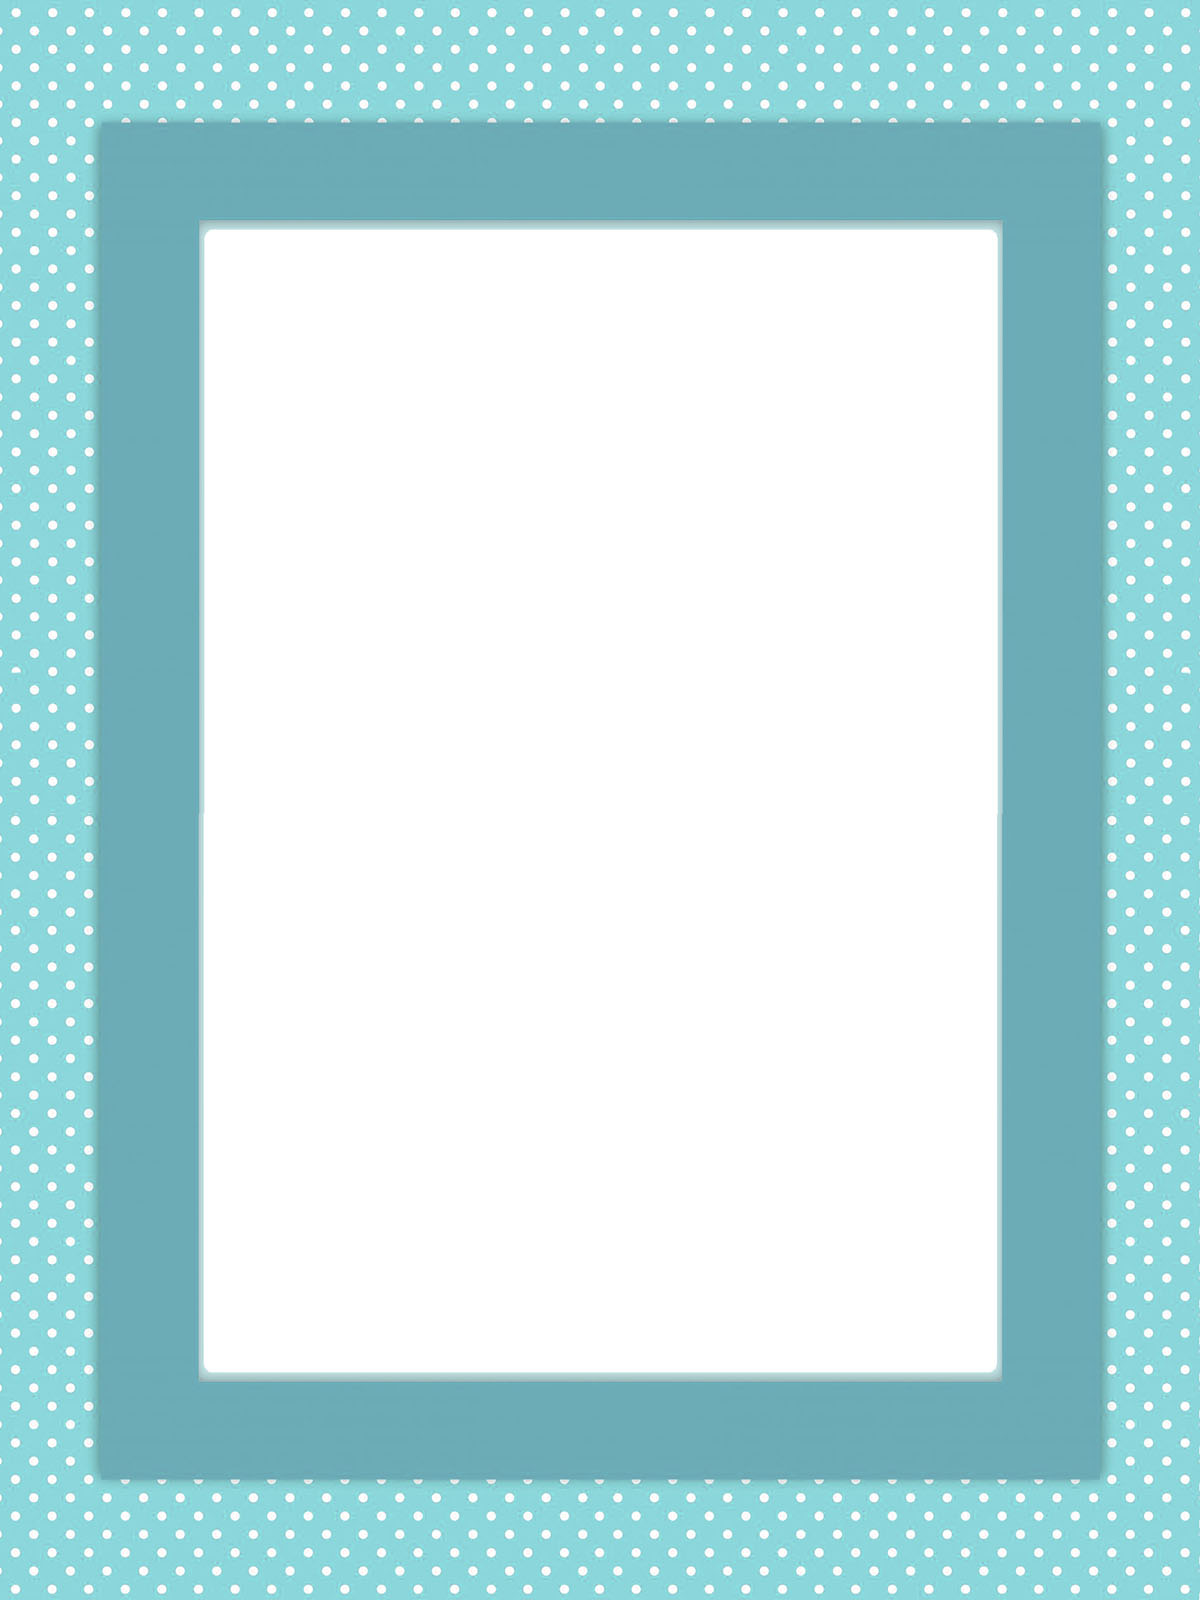 Printable Borders and Image Frames.